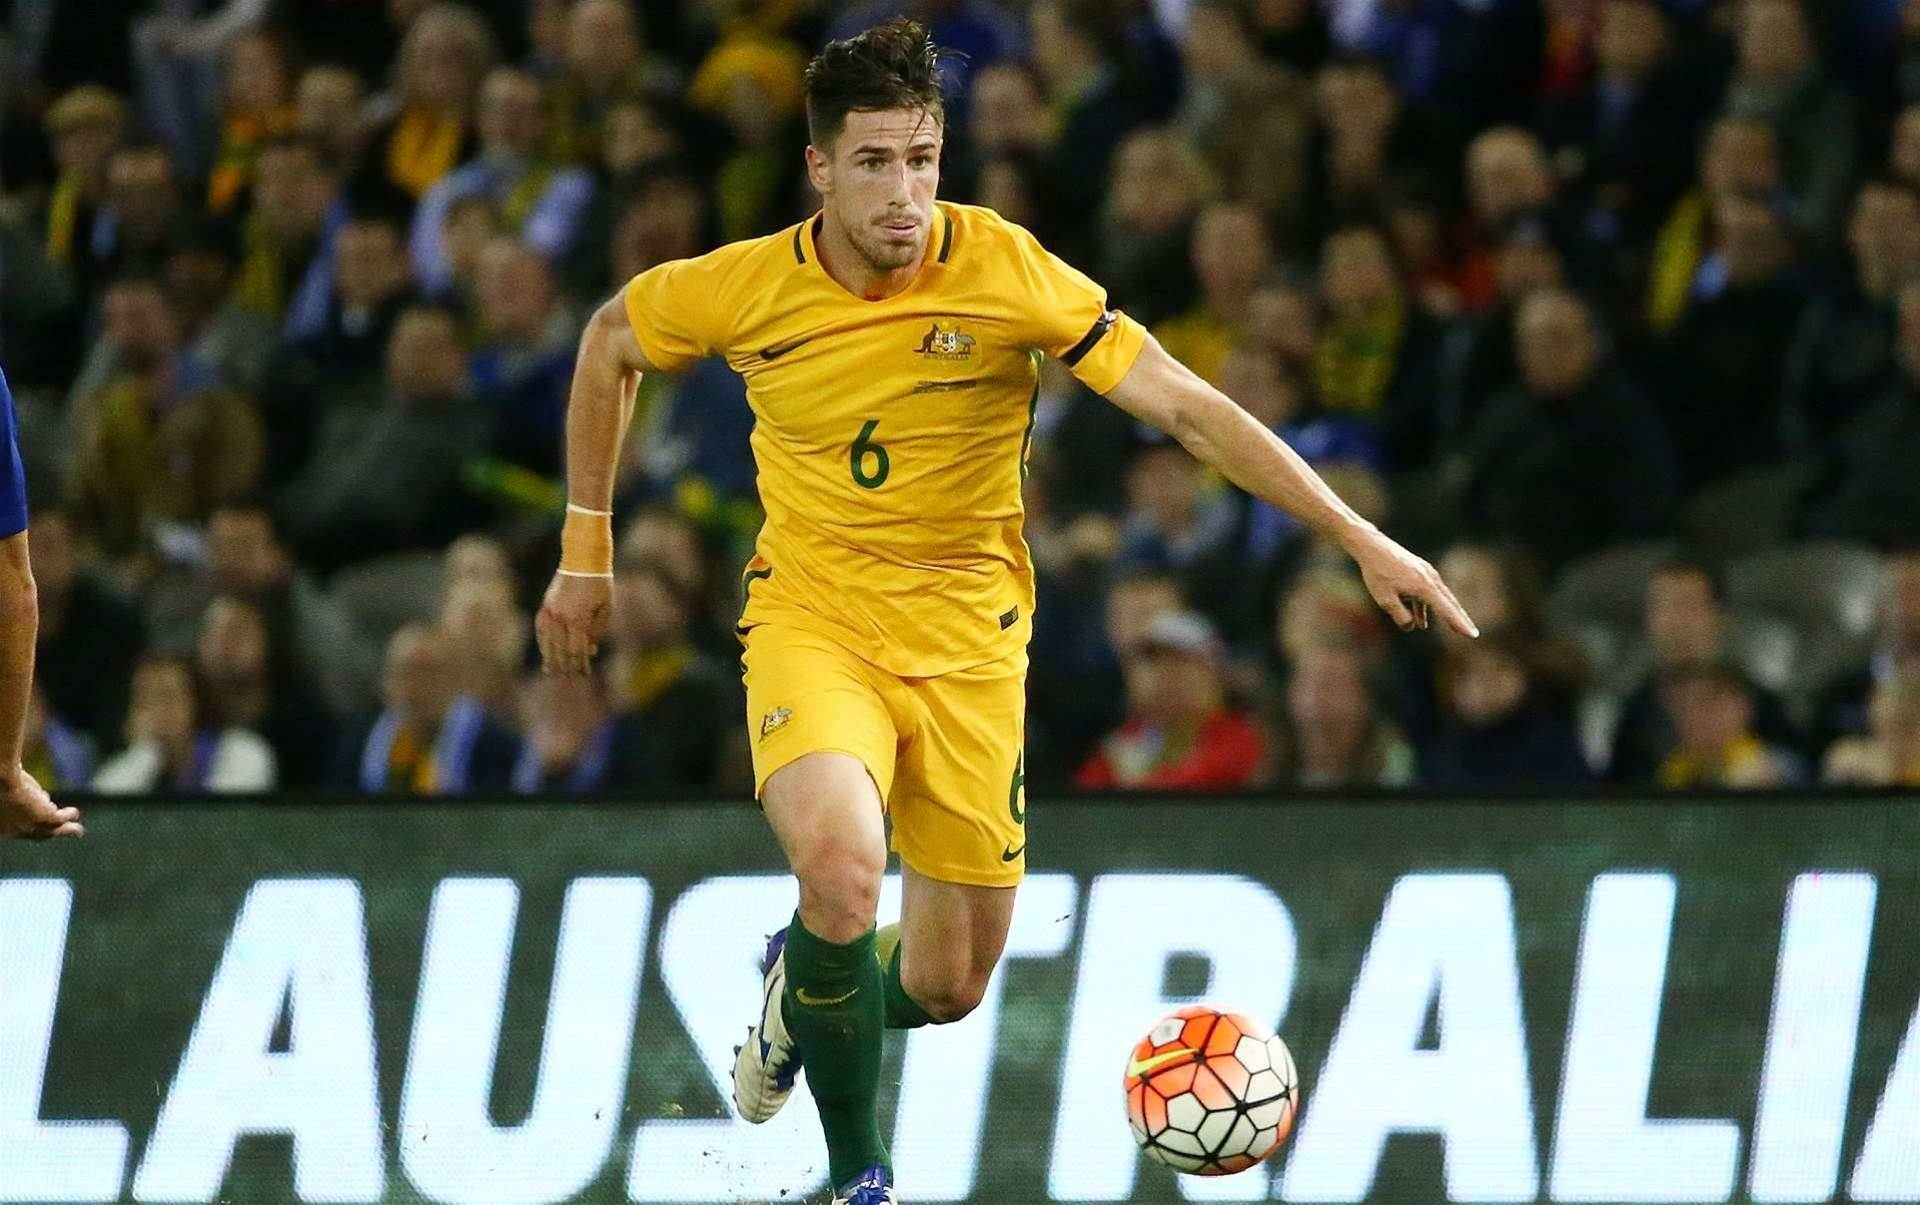 Degenek's Roos right-back chance